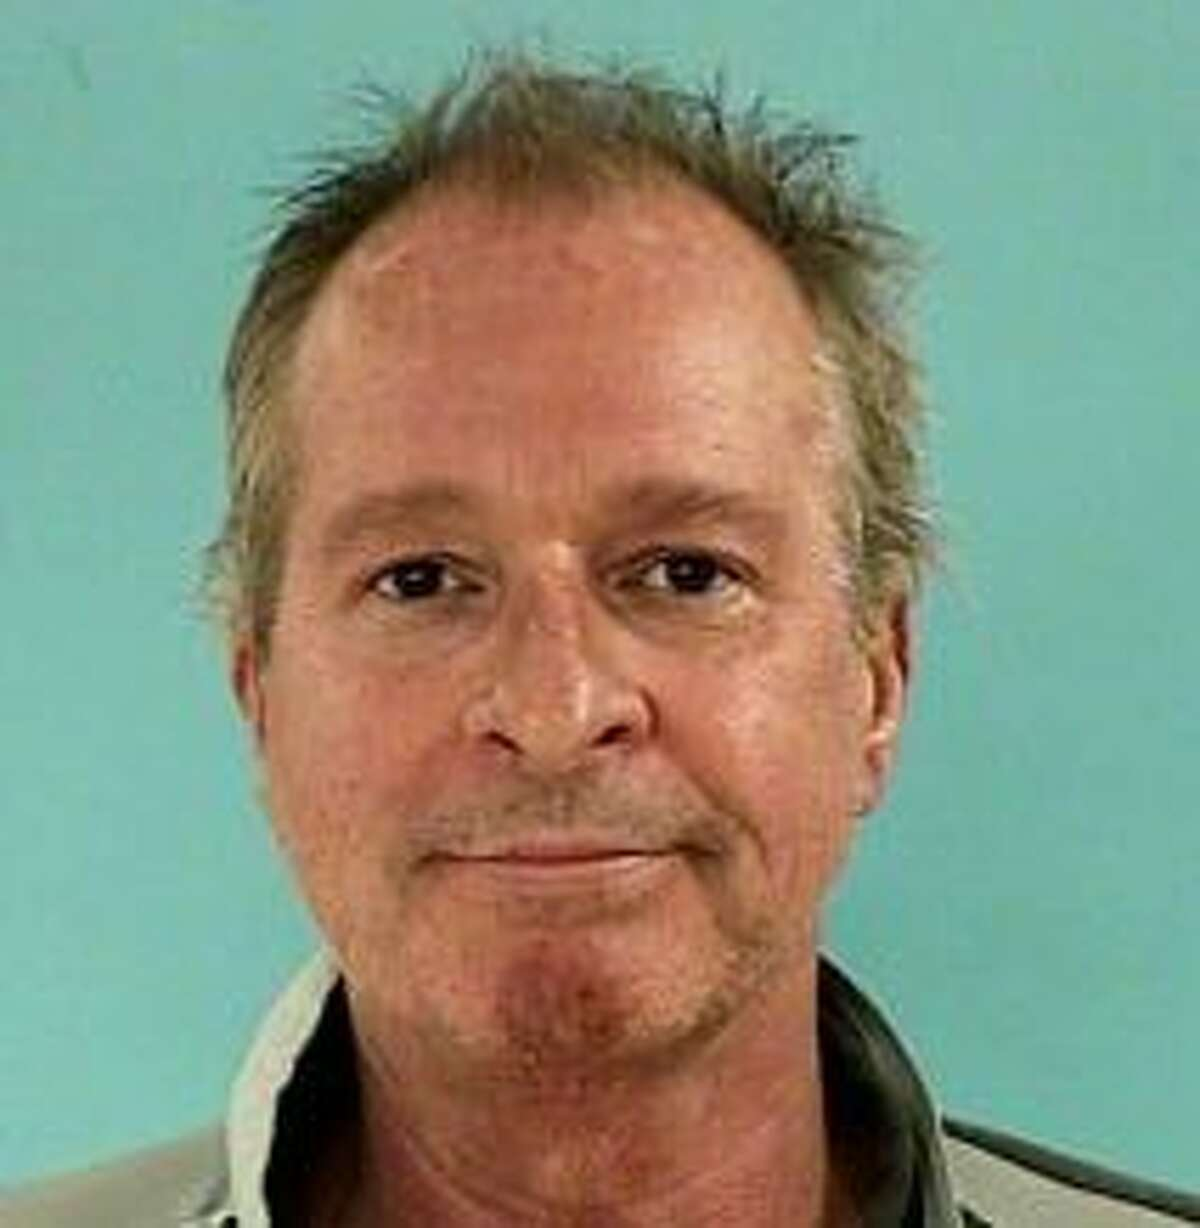 Thomas Anthony Quinlan, 58, was found dead Thursday, Jan. 10, inside his Lake Conroe home in the 140 block of North April Waters.